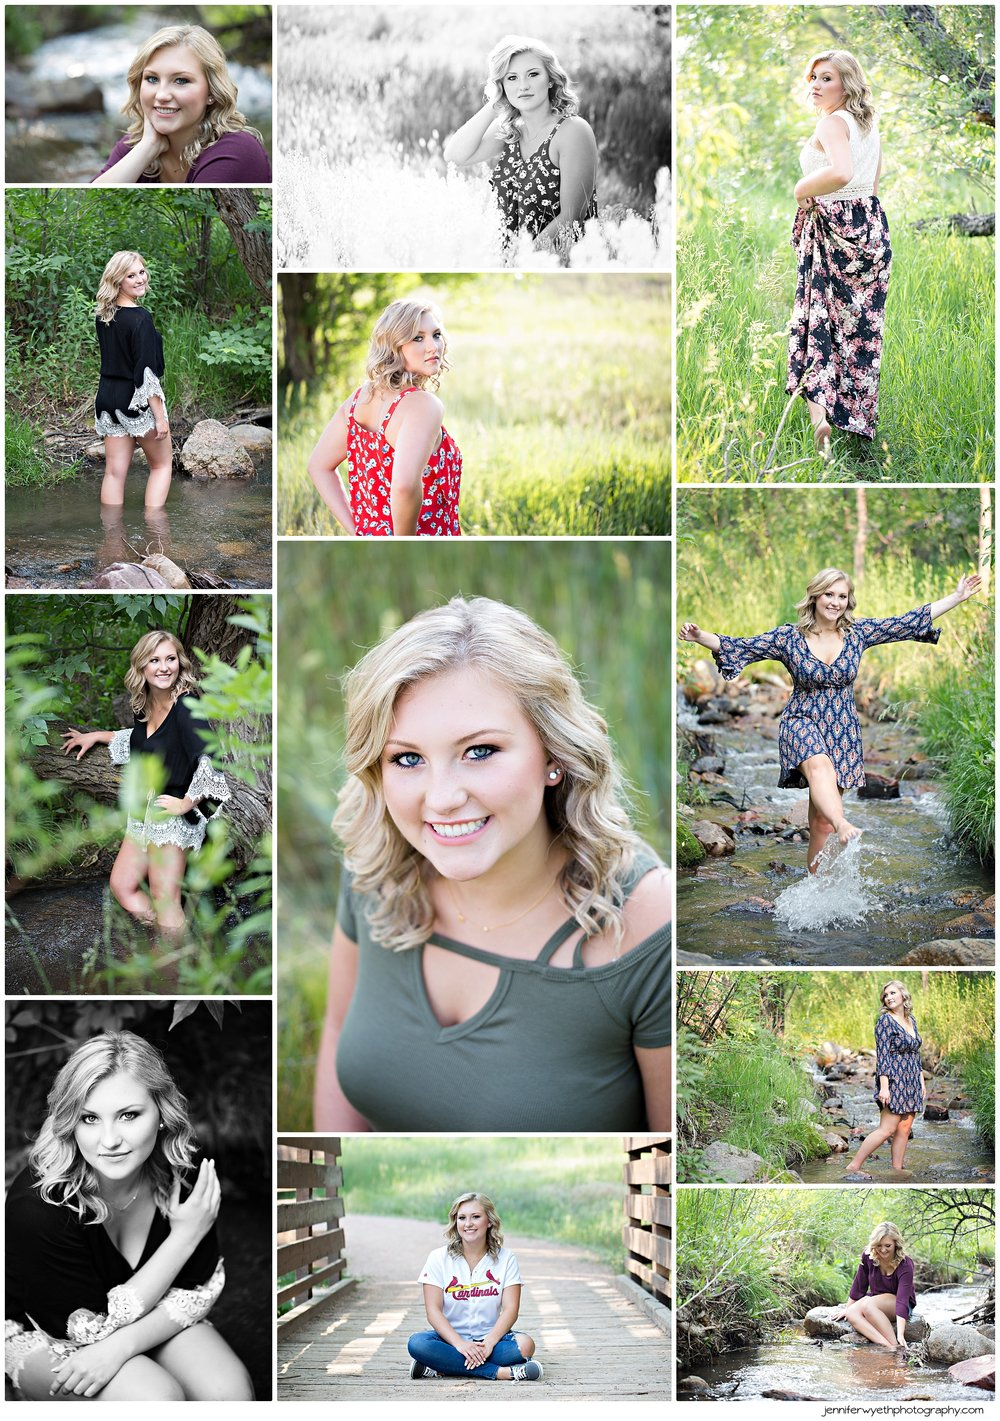 Jennifer-Wyeth-photography-senior-pictures-colorado-springs-photographer_0222.jpg